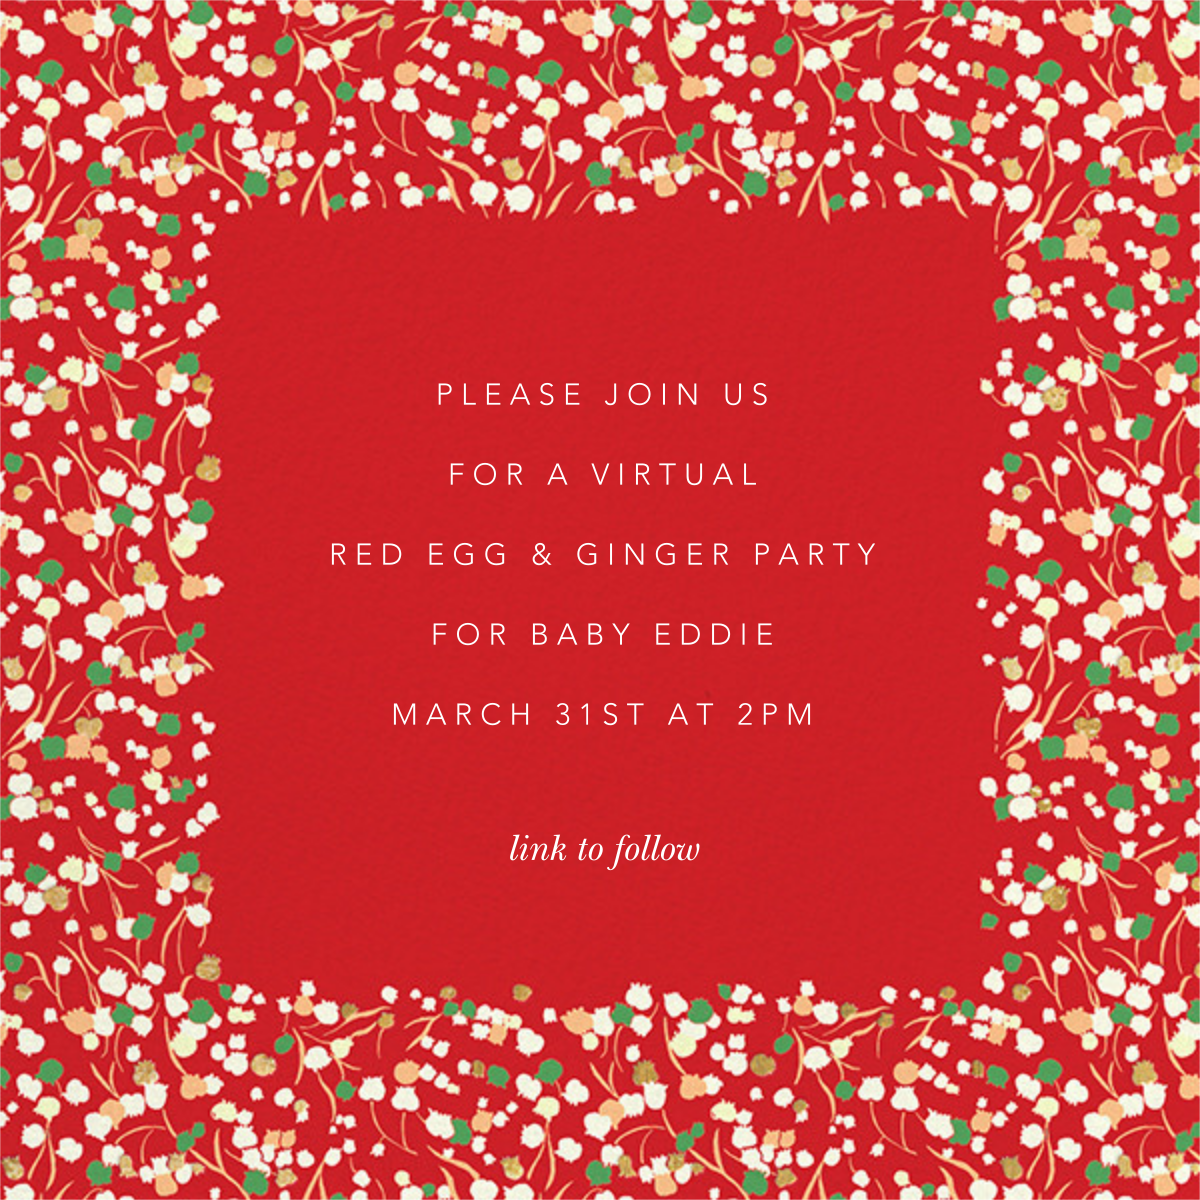 Tender Buttons Photo - Red - Anthropologie - Virtual parties - card back